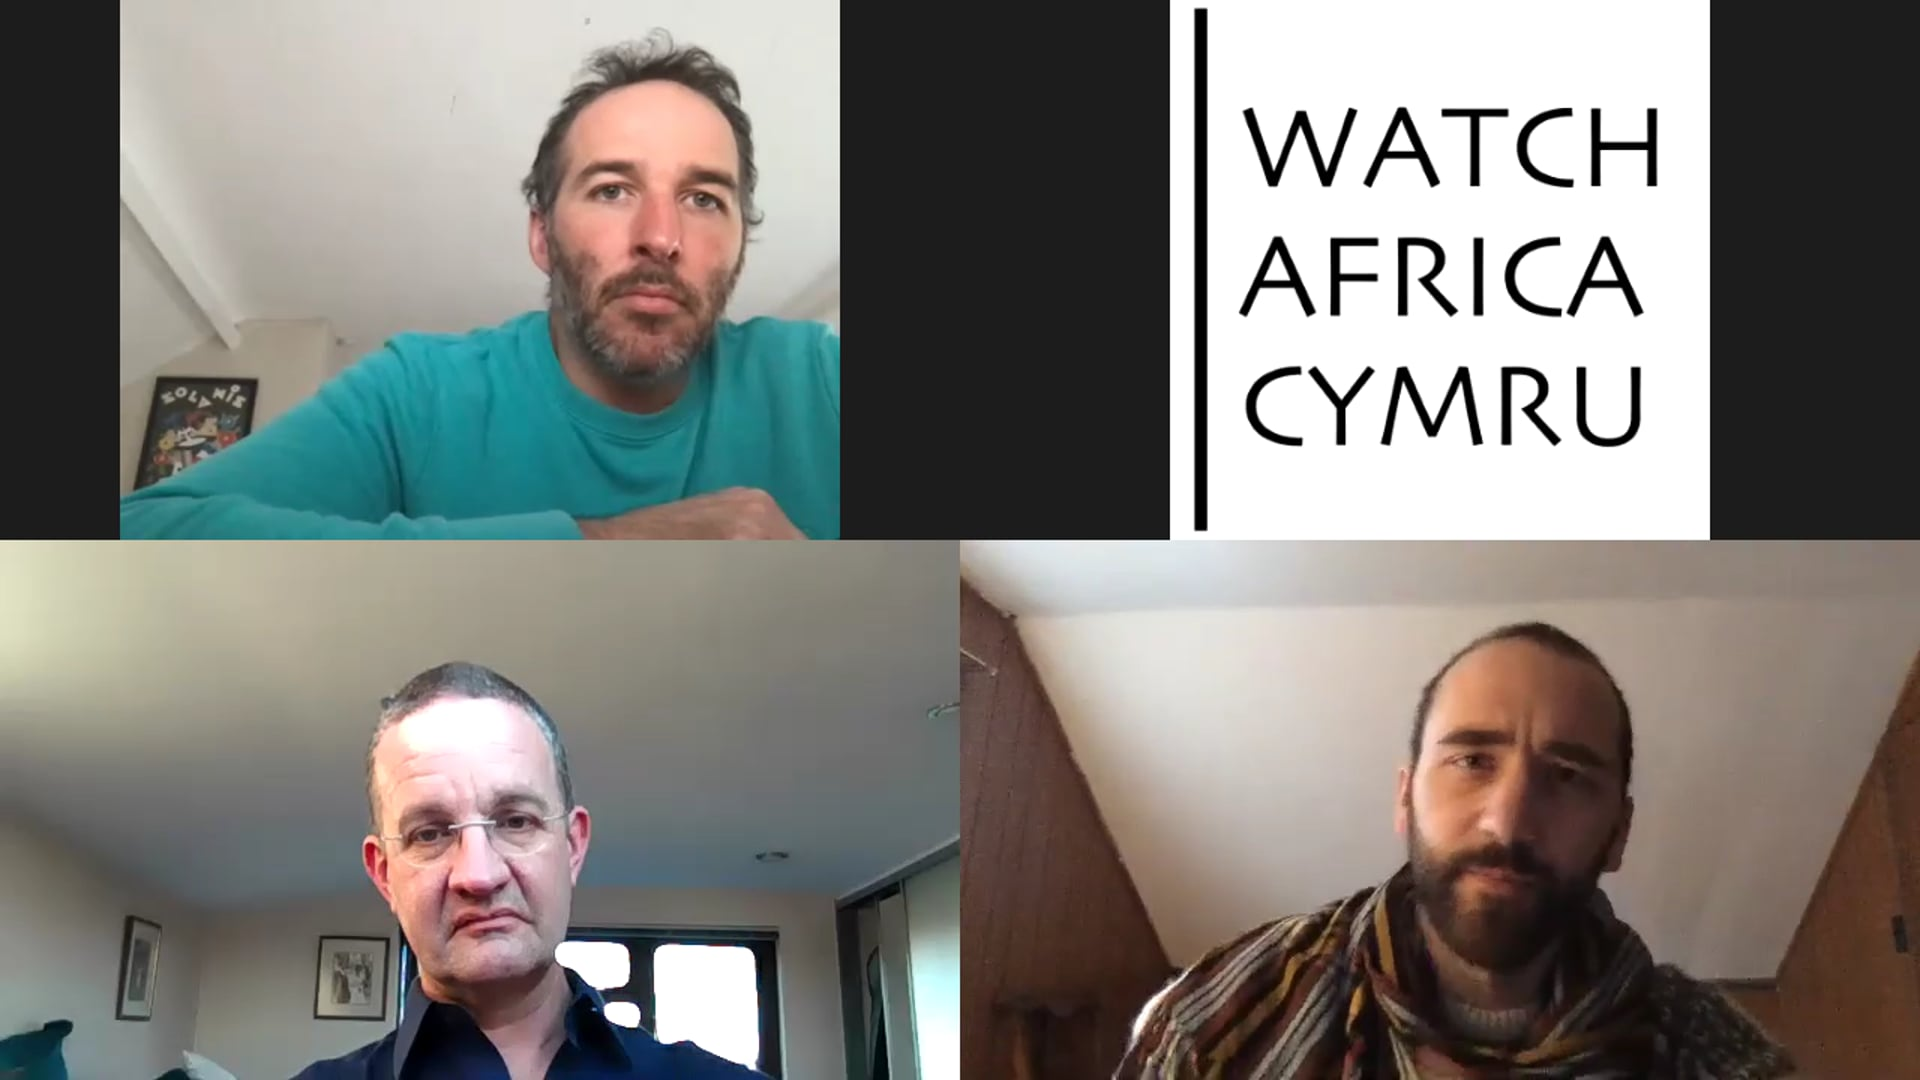 'Buganda Royal Music Revival' Q&A with Director Basile Koechlin joined by Patrick Kind and Kevin Price from Royal Welsh College of Music and Drama (RWCMD) and Chaired by Fadhili Maghiya